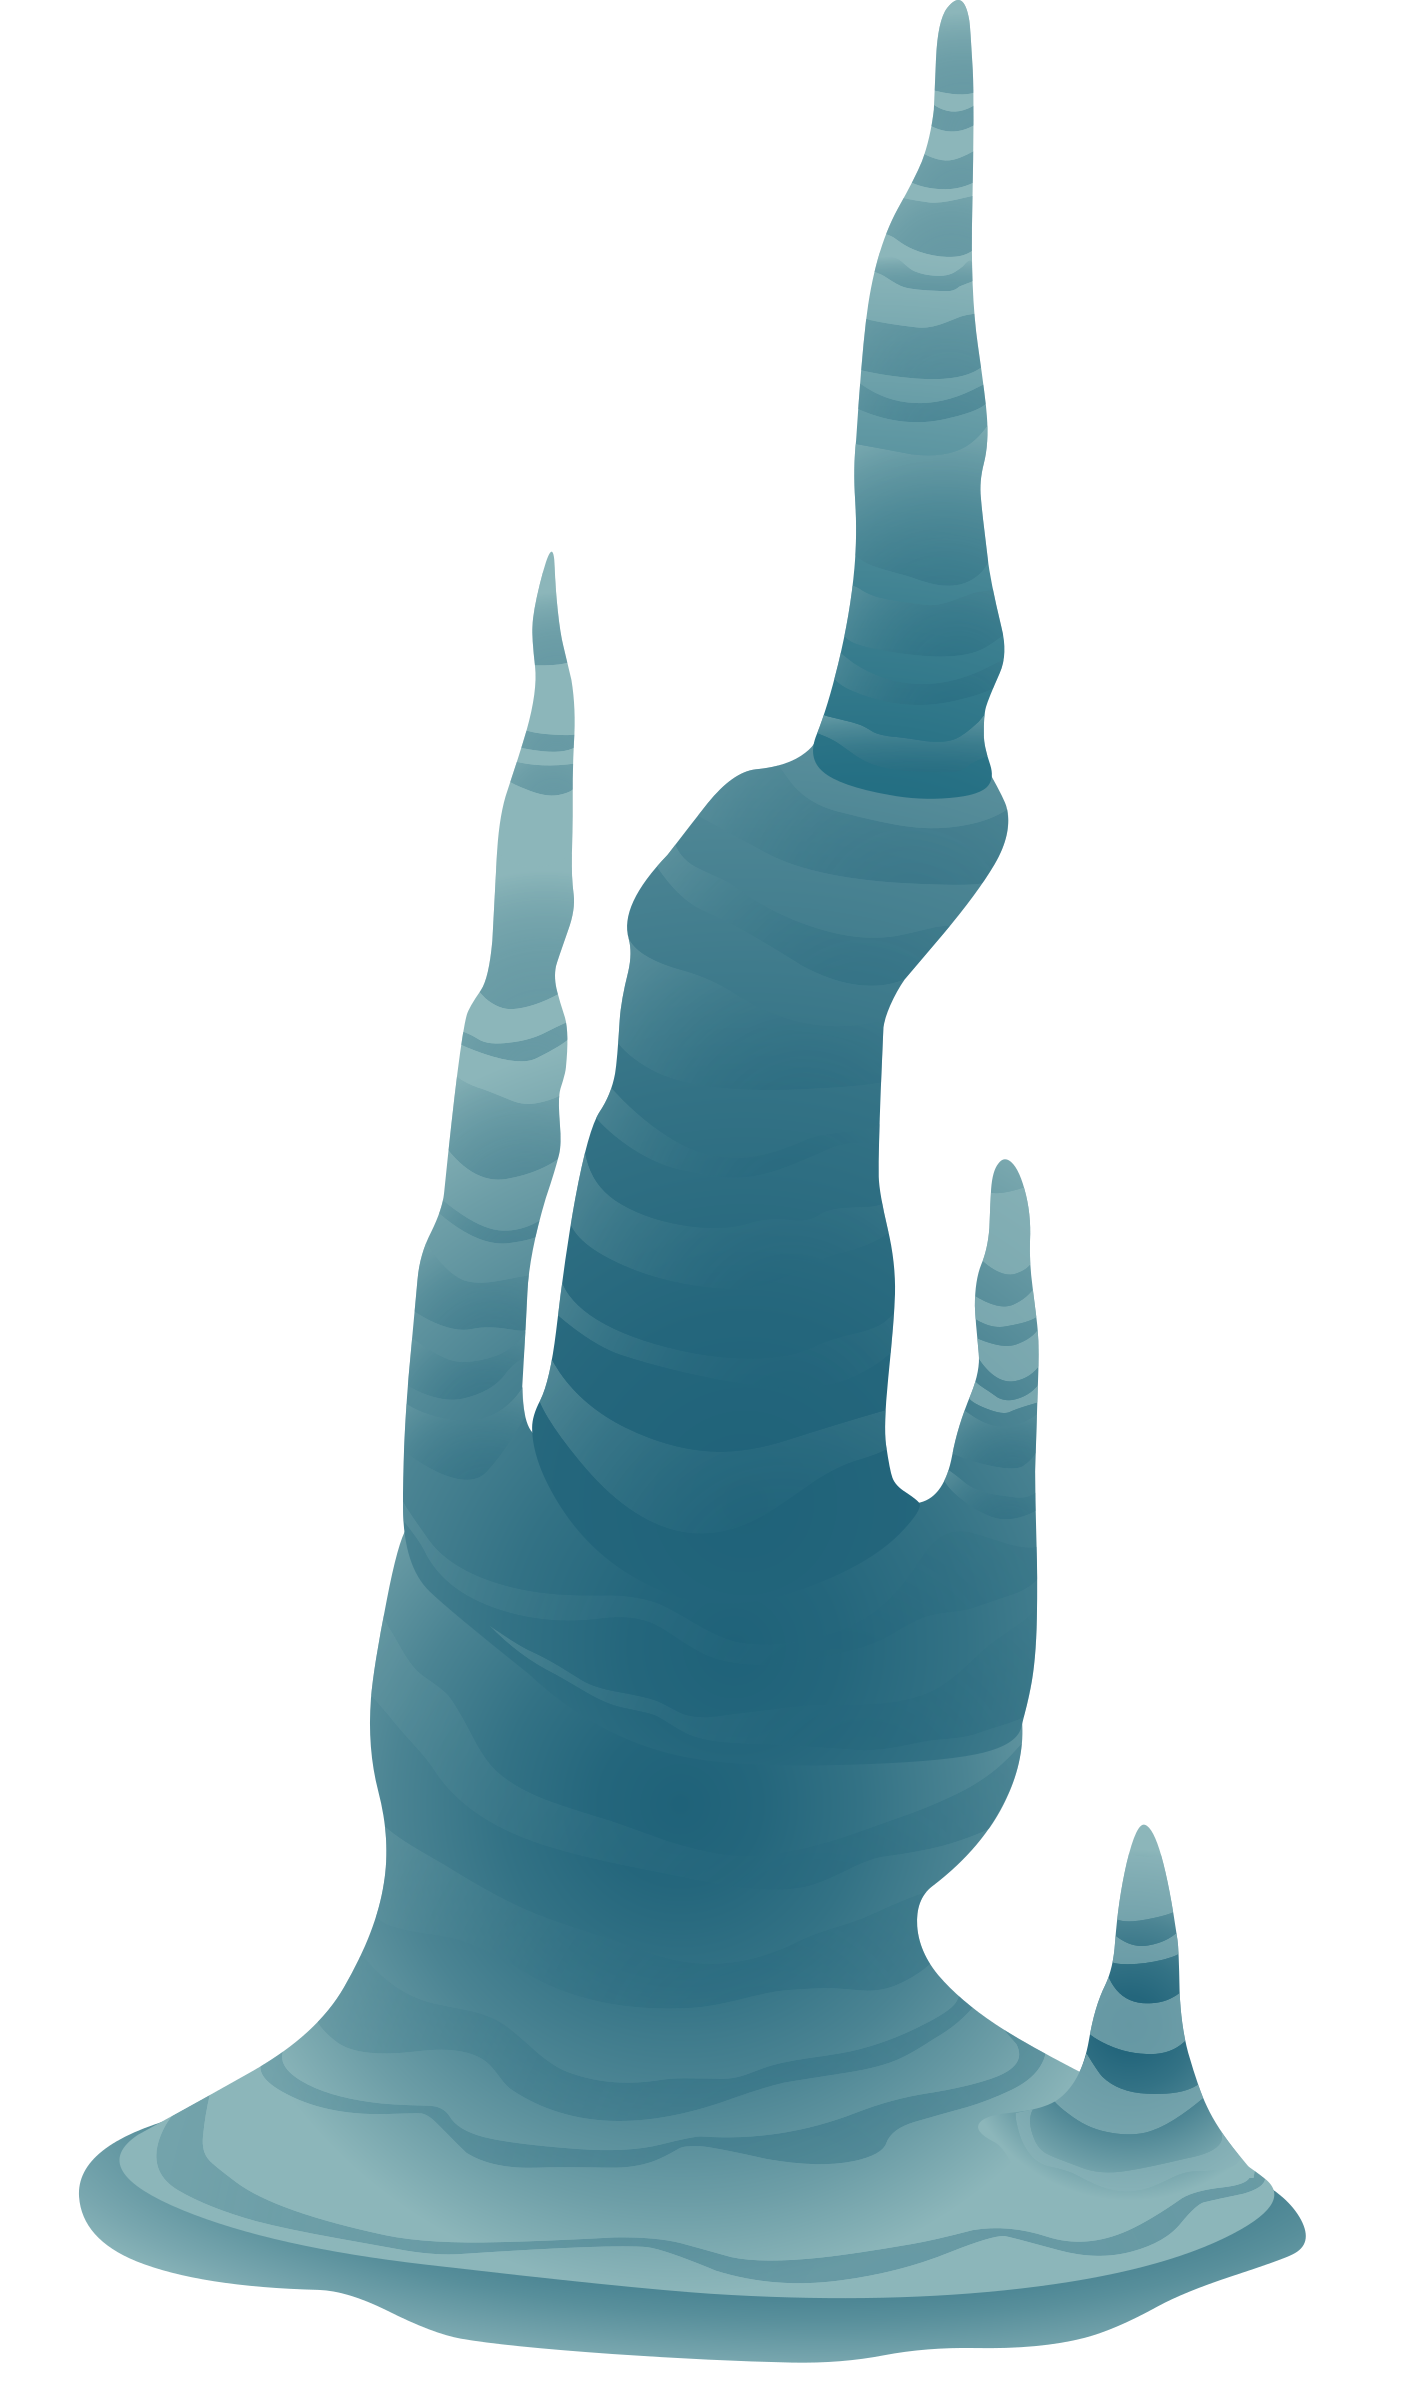 Cave clipart icicle 1 Clipart Ilmenskie Icicle 1